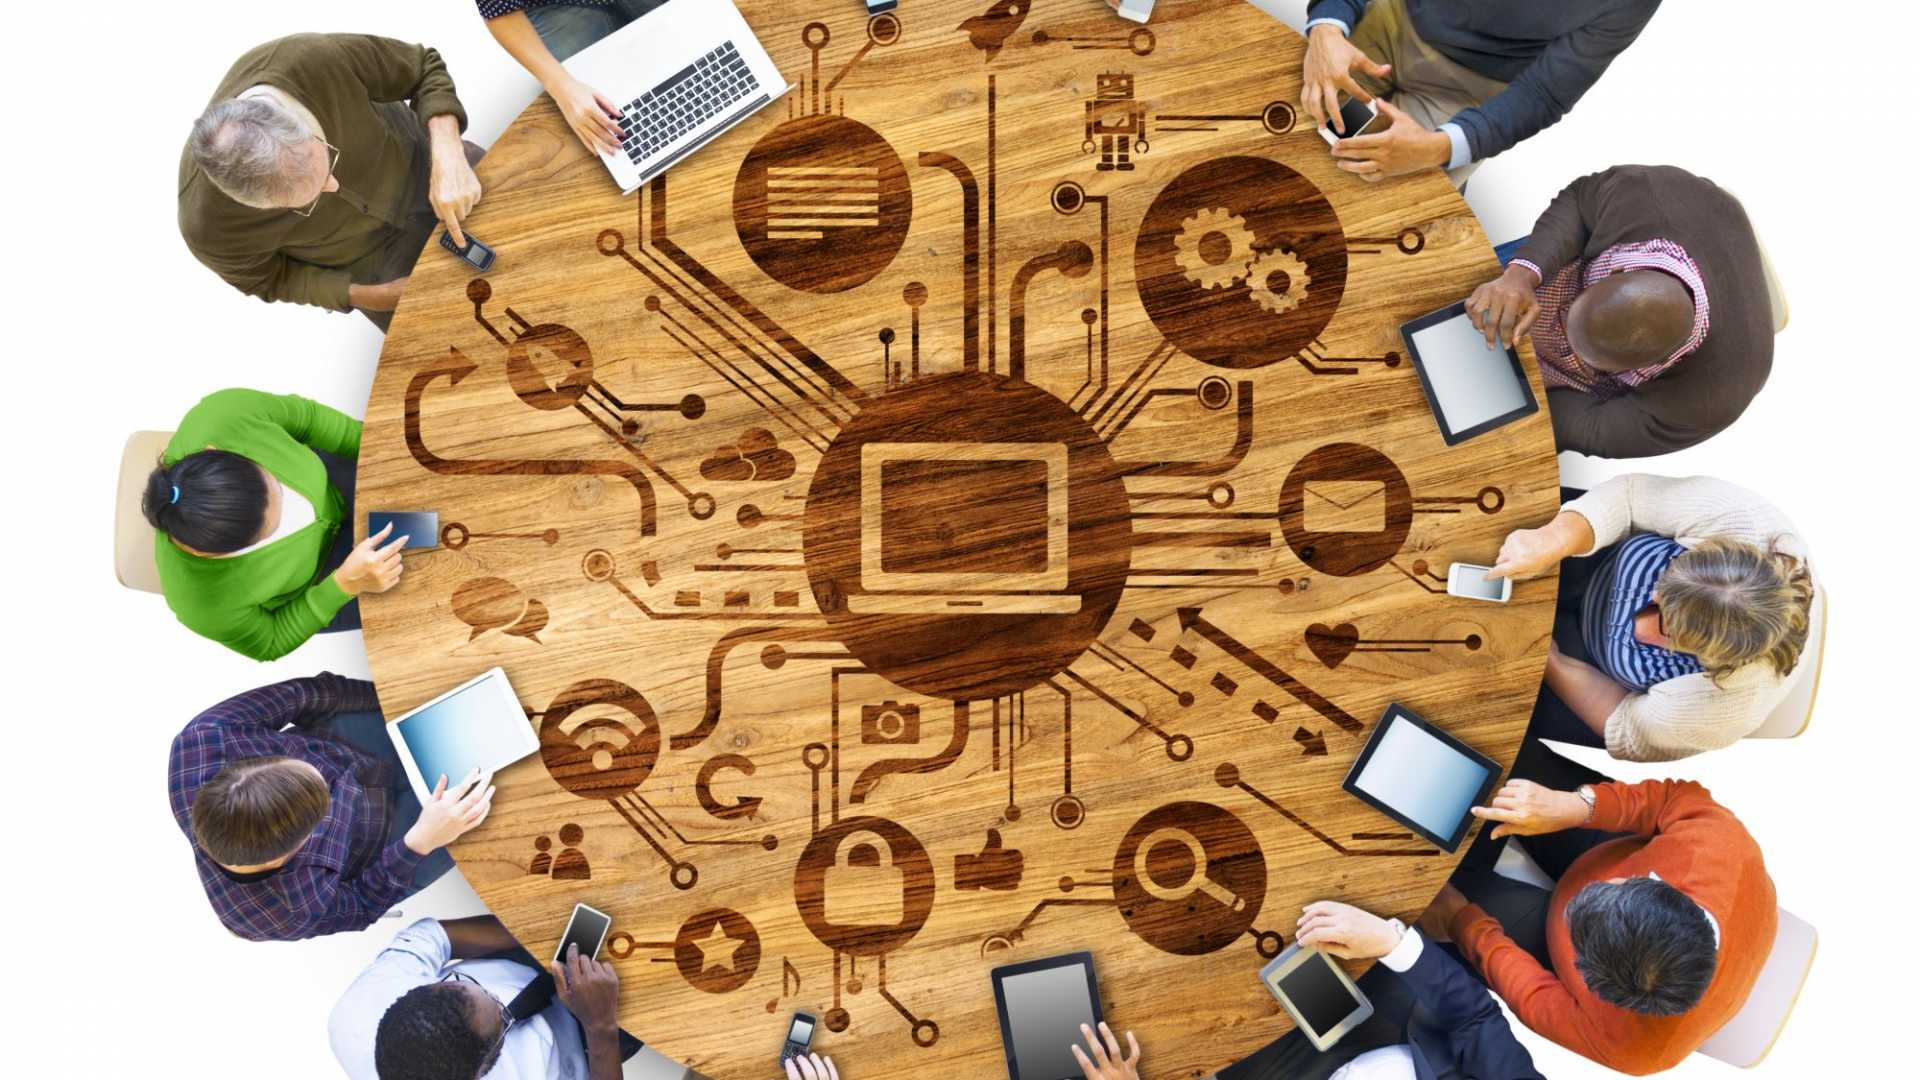 Digitalizing Your Business Means Re-Imagining How It Operates